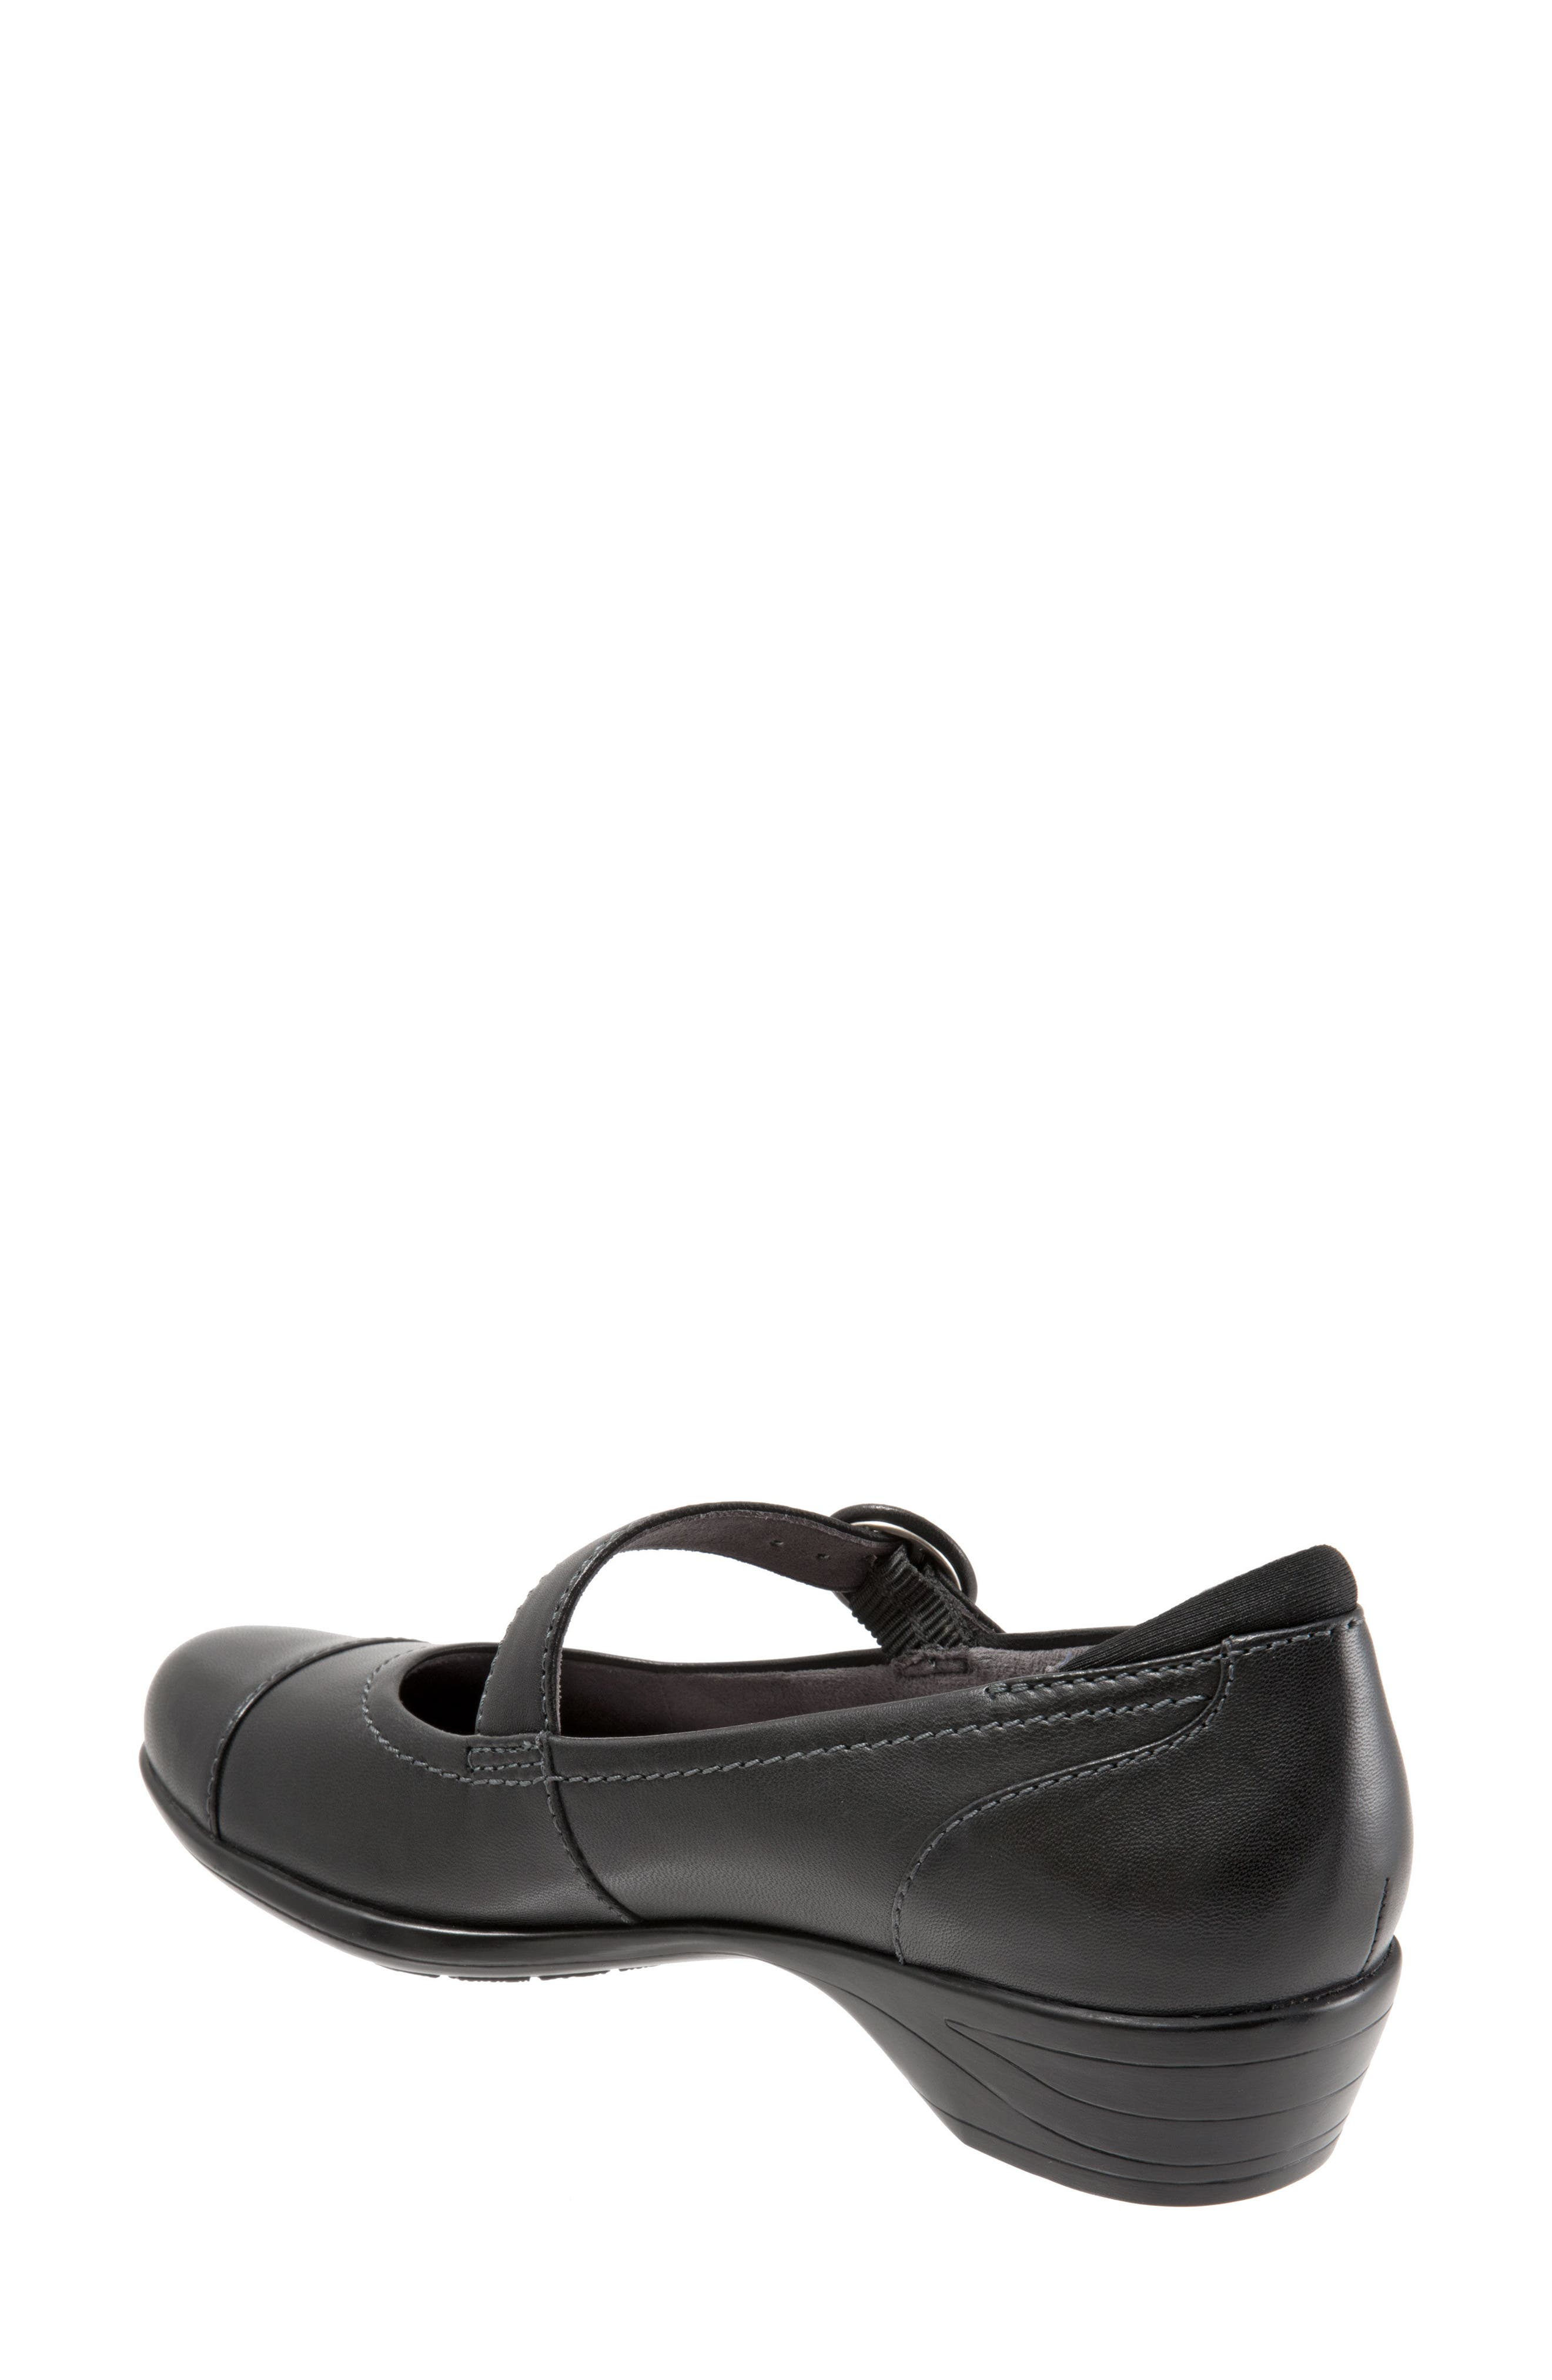 Chatsworth Mary Jane Pump,                             Alternate thumbnail 5, color,                             Black Leather